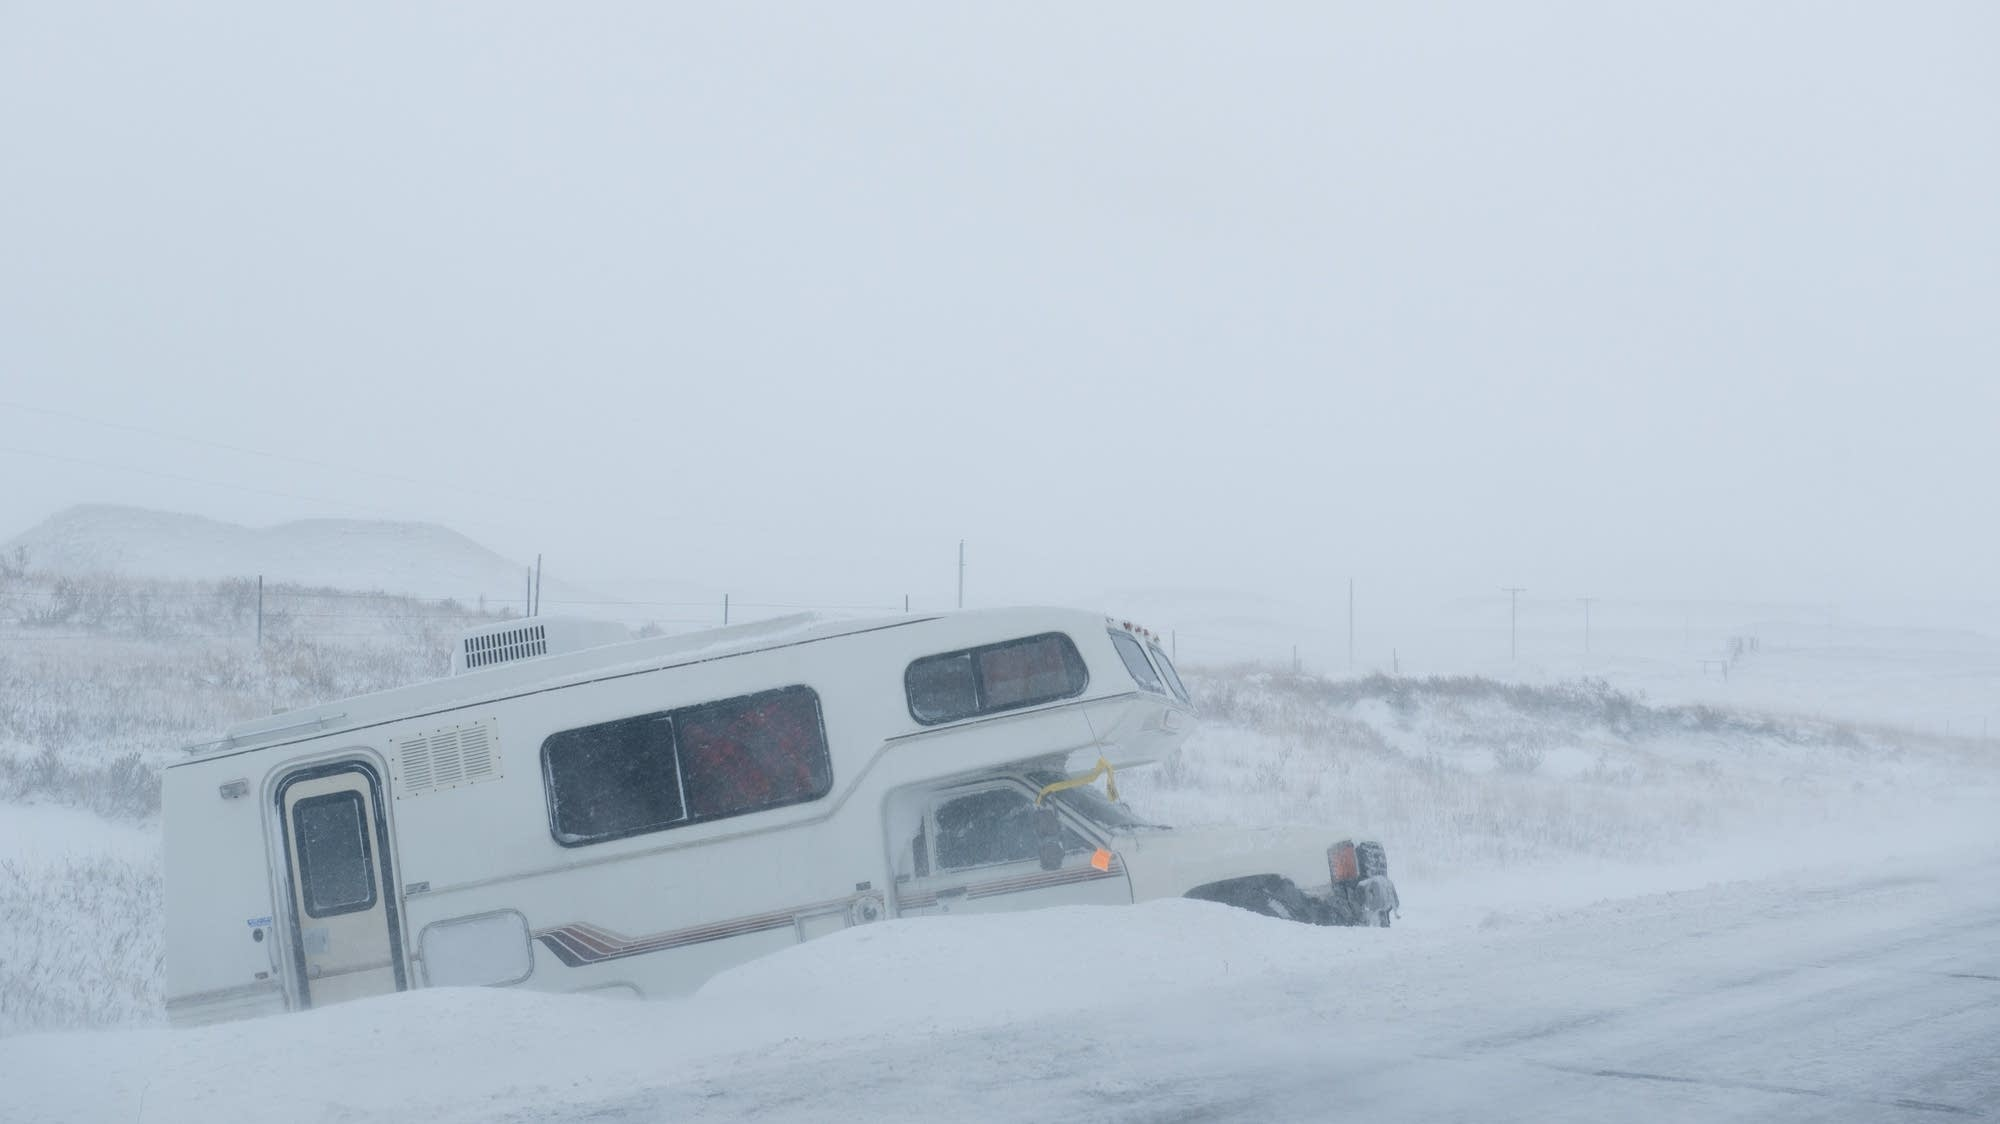 Blowing snow made driving hazardous along Route 6.